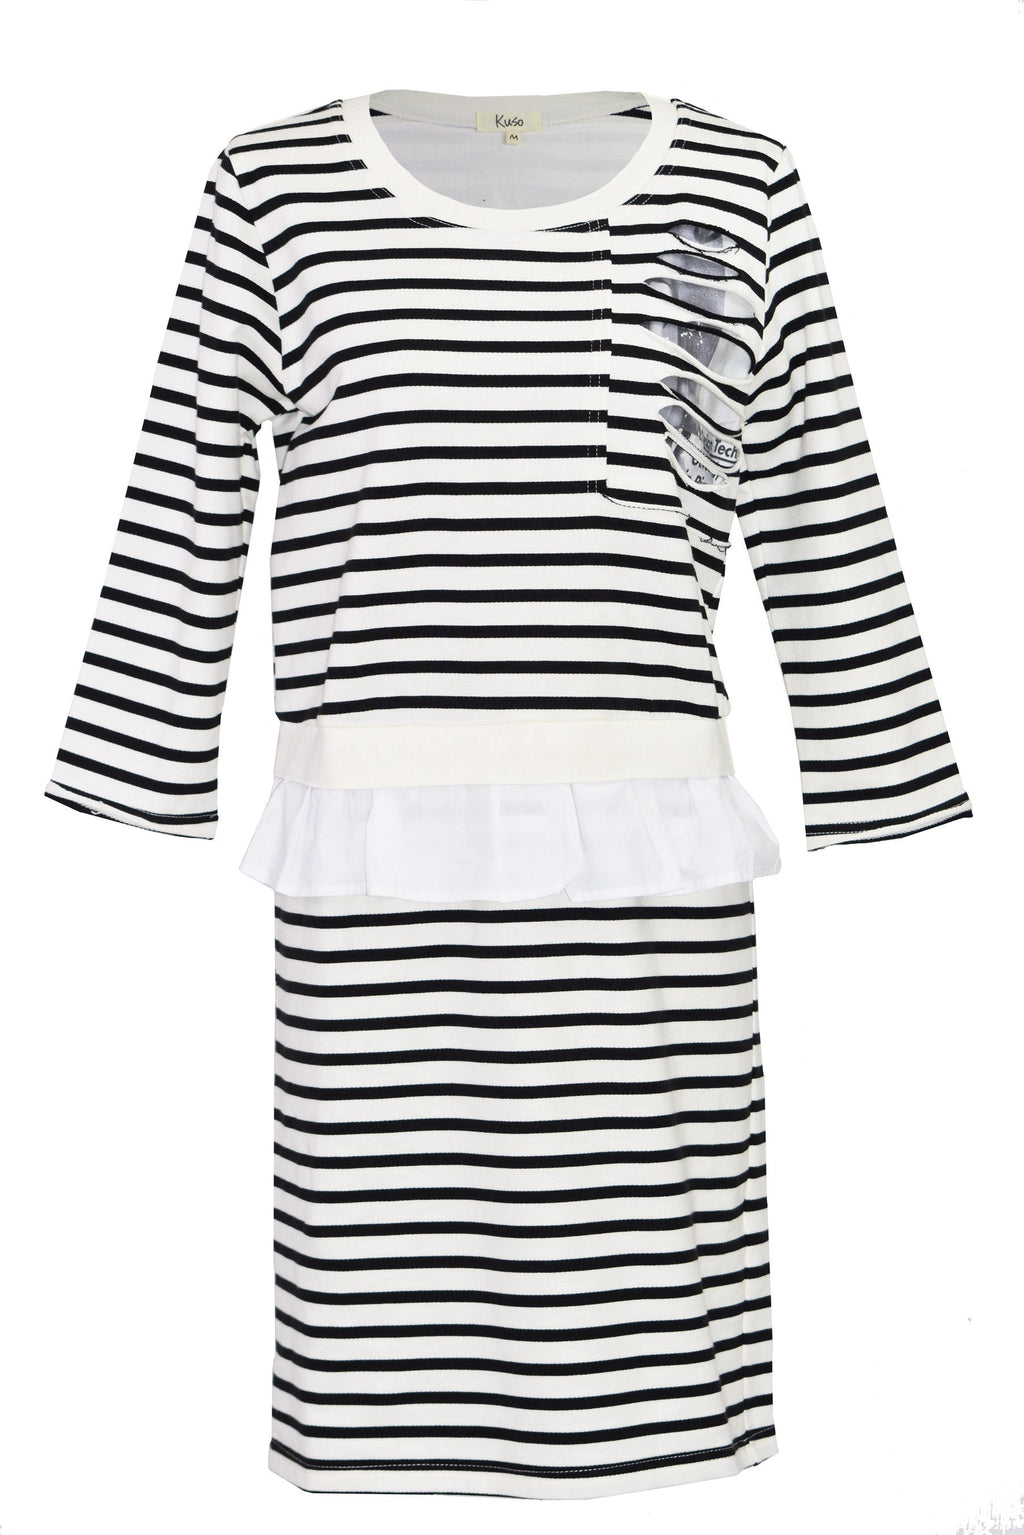 Ruffle-trimmed striped dress